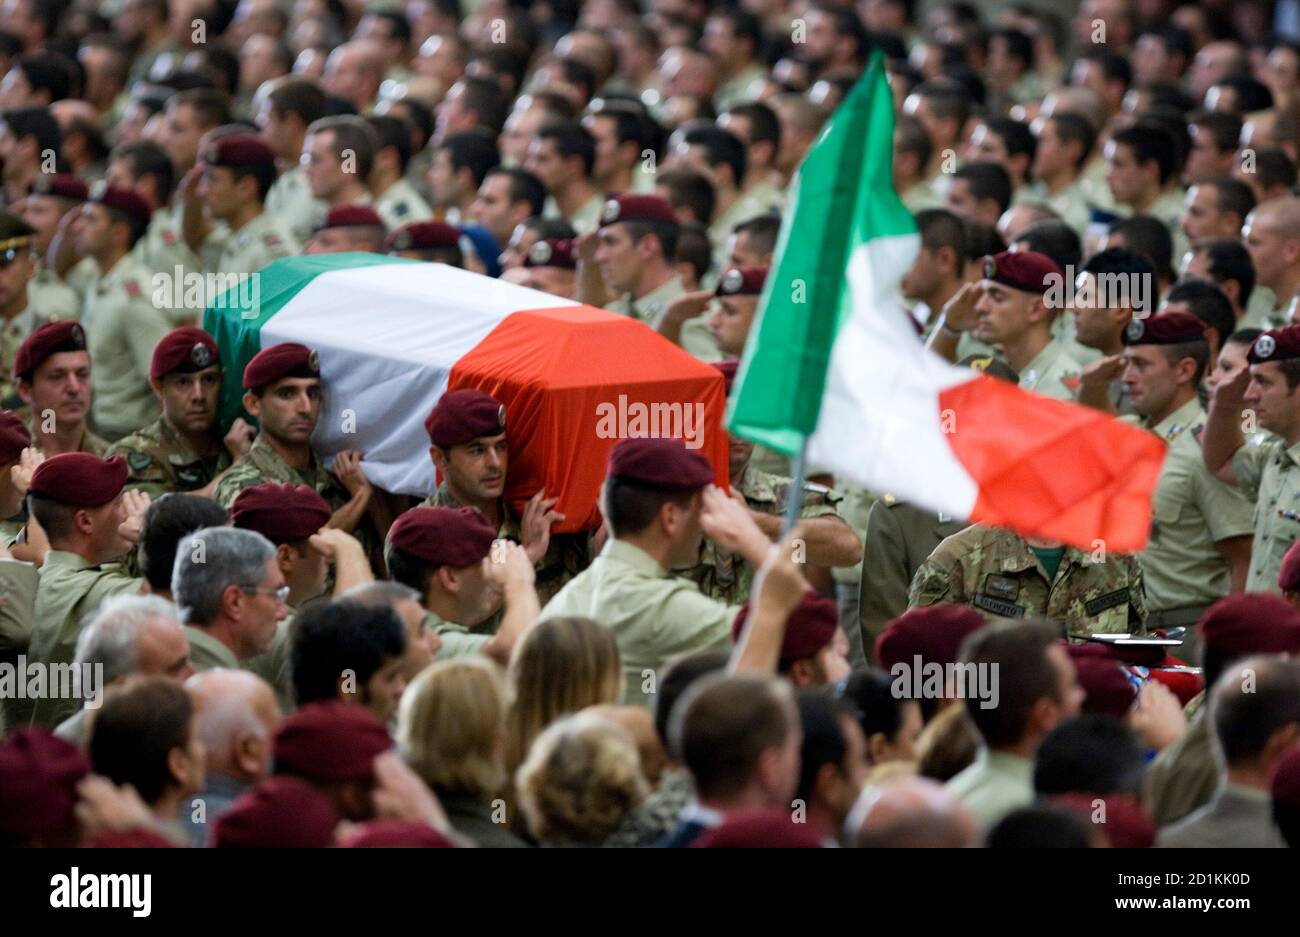 "Italian soldiers carry the coffin of one of the six Italian soldiers killed in Afghanistan, as the Italy national flag flies during a funeral service at Saint Paul Basilica in Rome September 21, 2009. Italy wants to withdraw its troops from Afghanistan ""as soon as possible"" but will not take the decision unilaterally, Berlusconi said on Thursday.   REUTERS/Alessandro Bianchi   (ITALY POLITICS CONFLICT OBITUARY IMAGES OF THE DAY) Foto Stock"